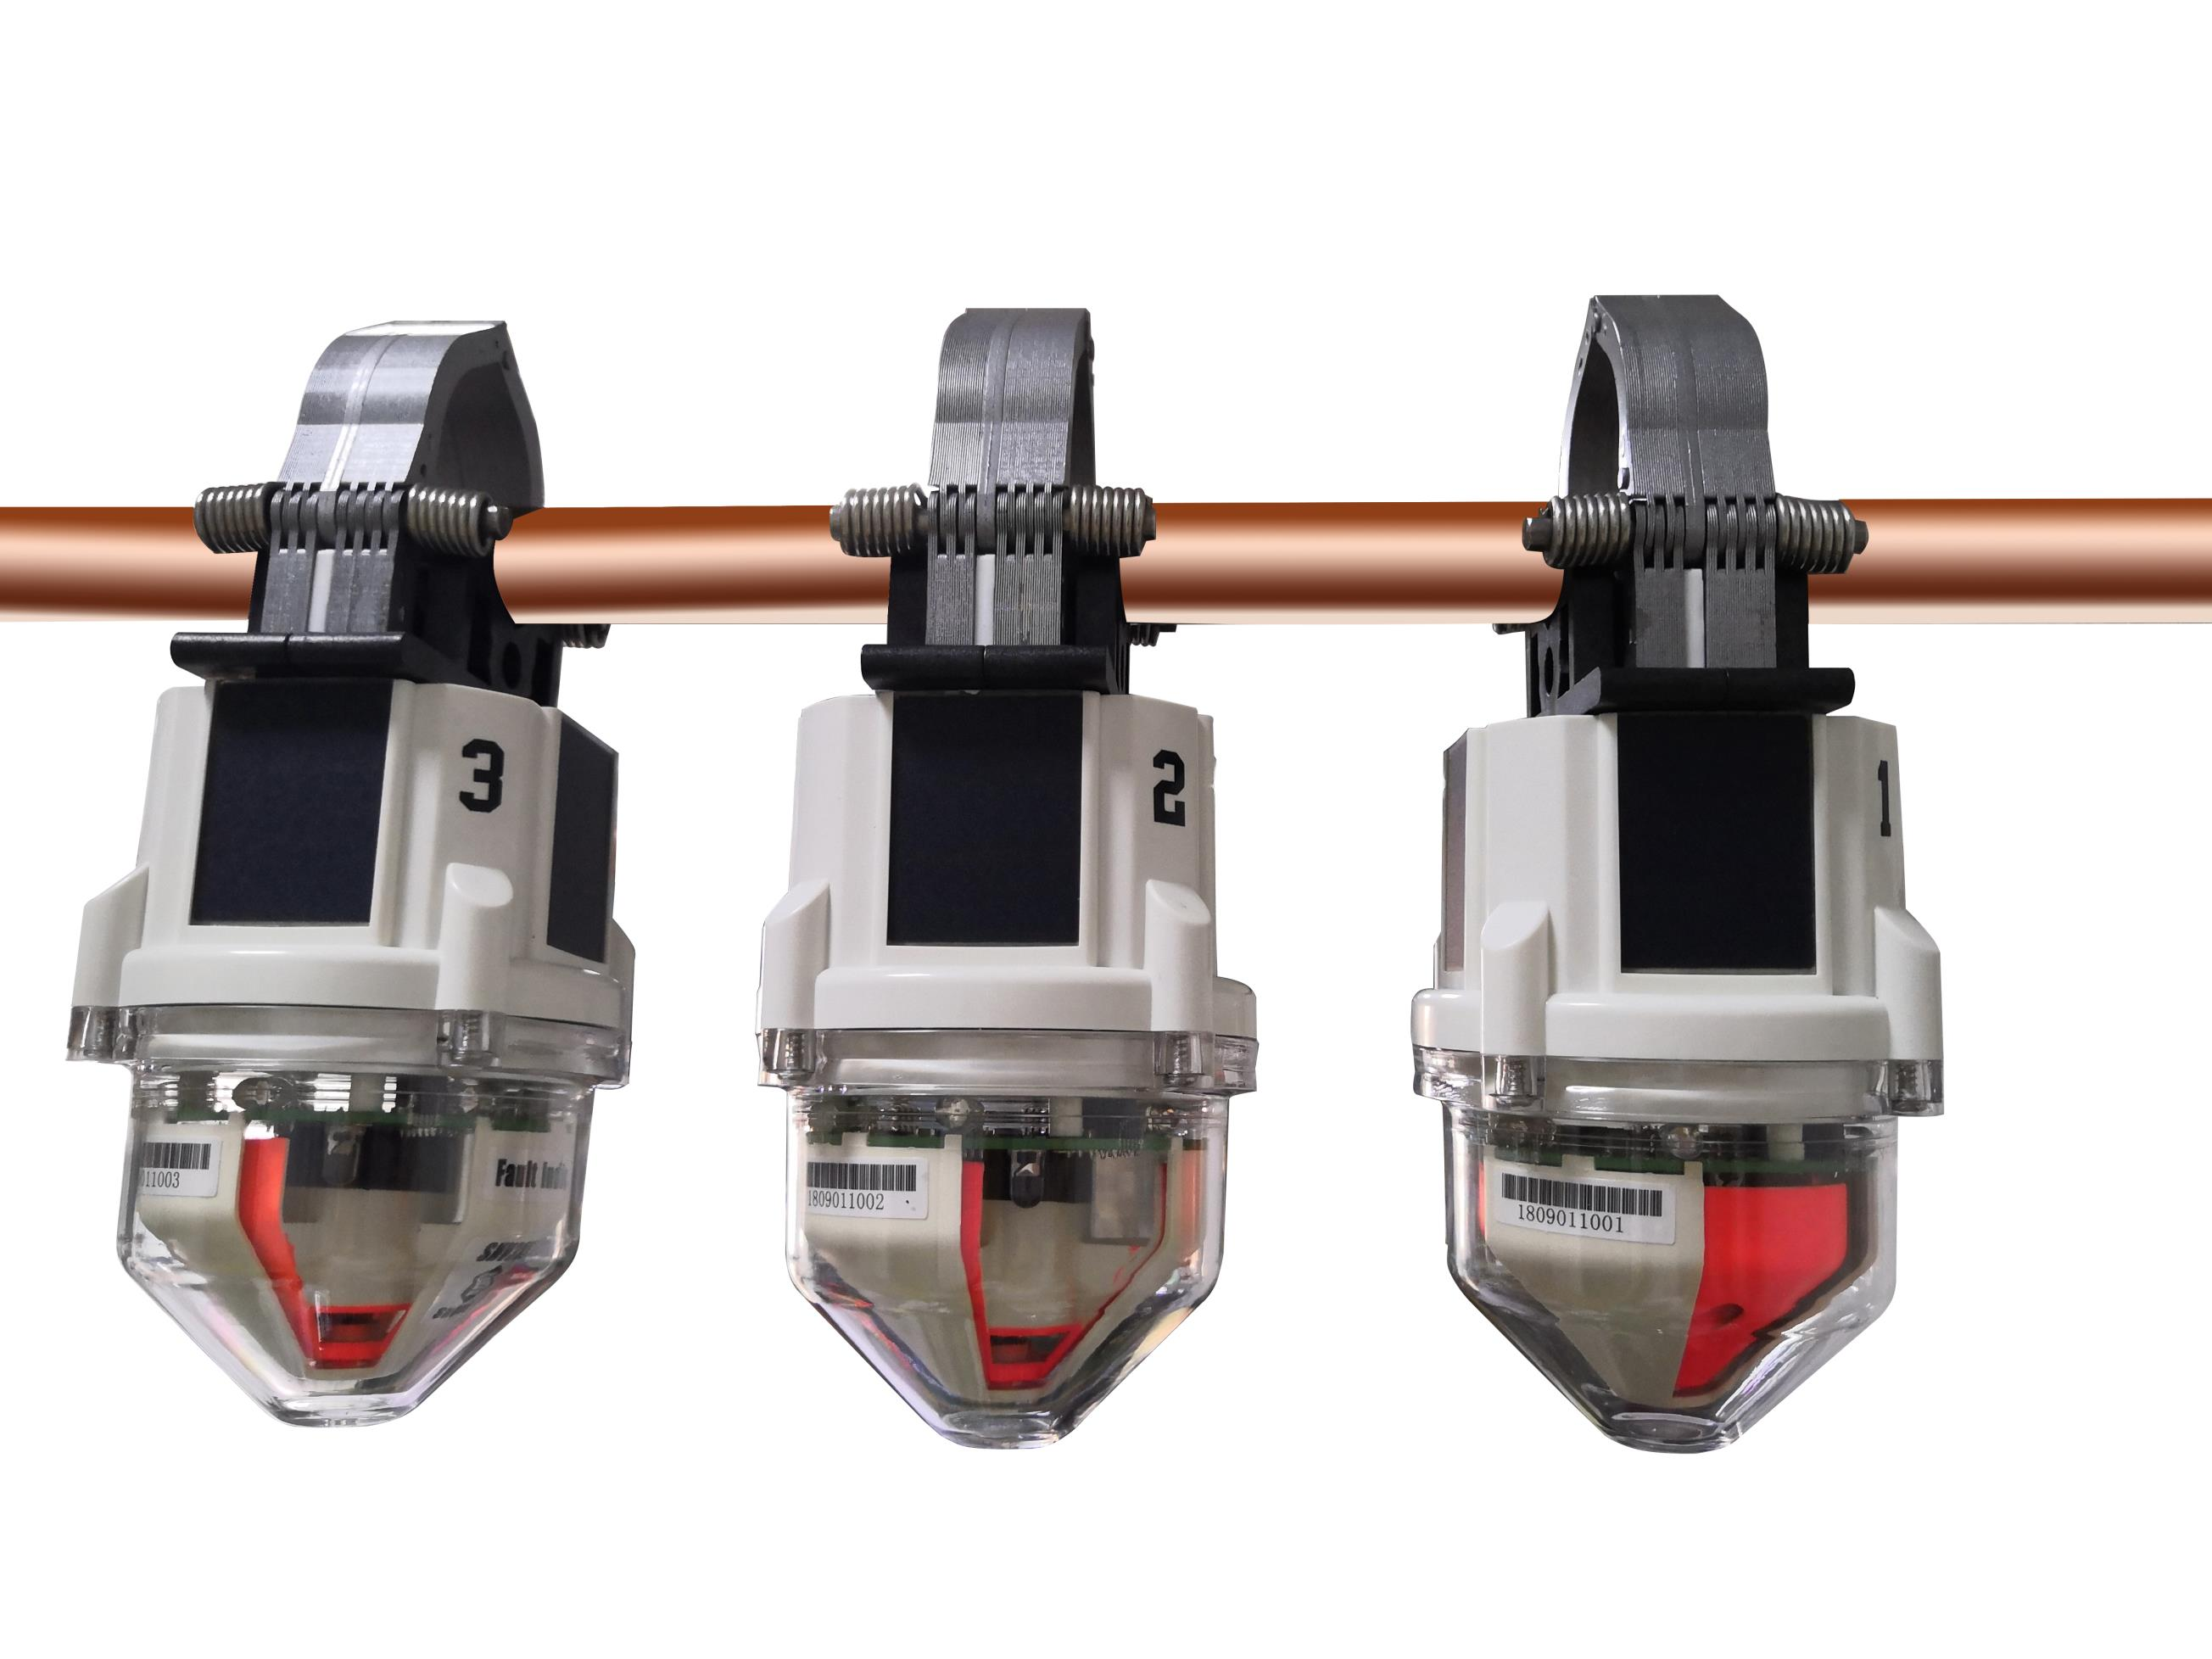 Hot sales of Overhead type earthing and short circuit fault indicator(four remote)